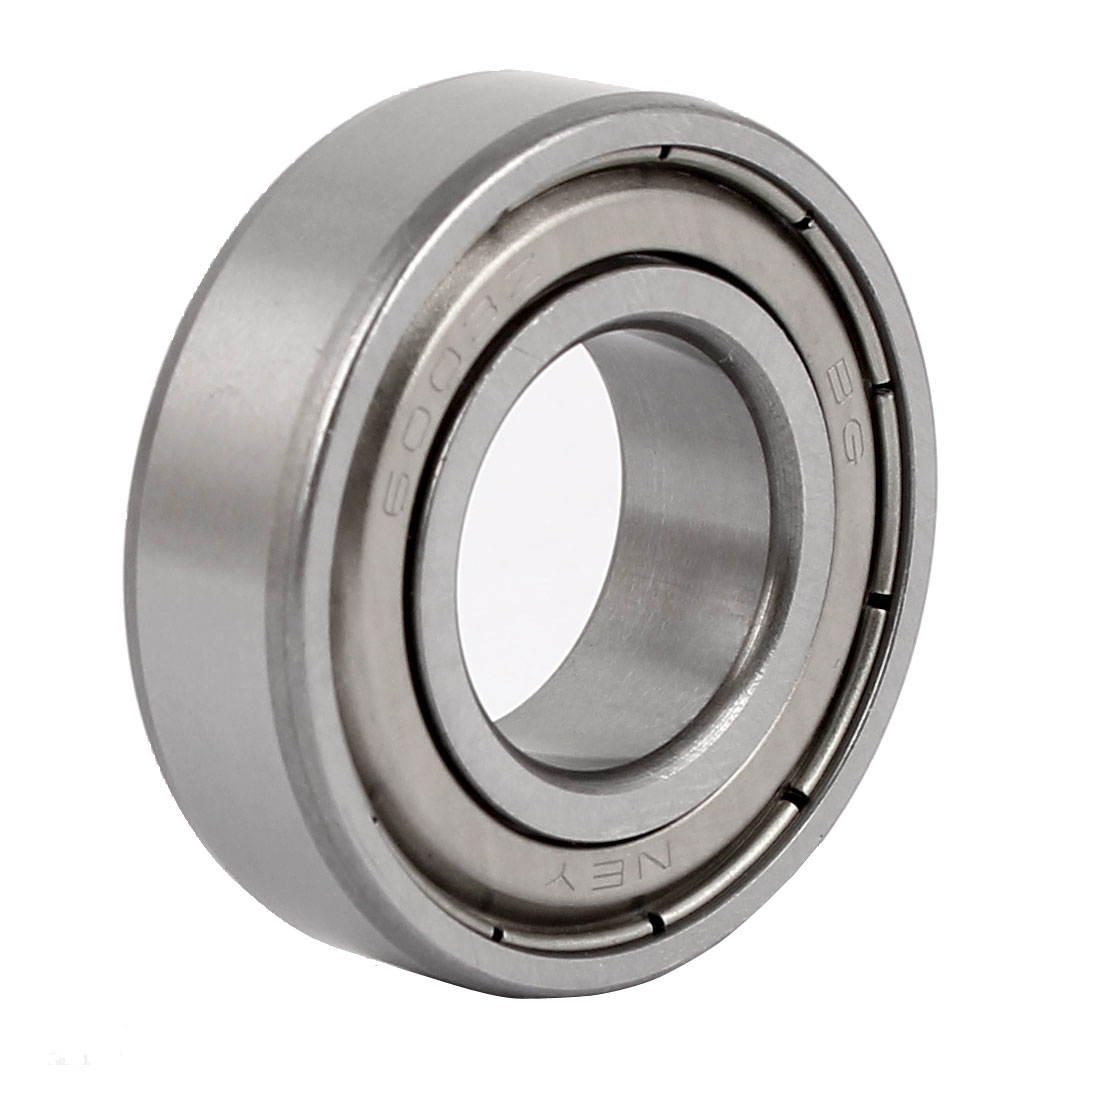 ZZ6003 Double Shielded Deep Groove Ball Bearing 35mmx17mmx10mm